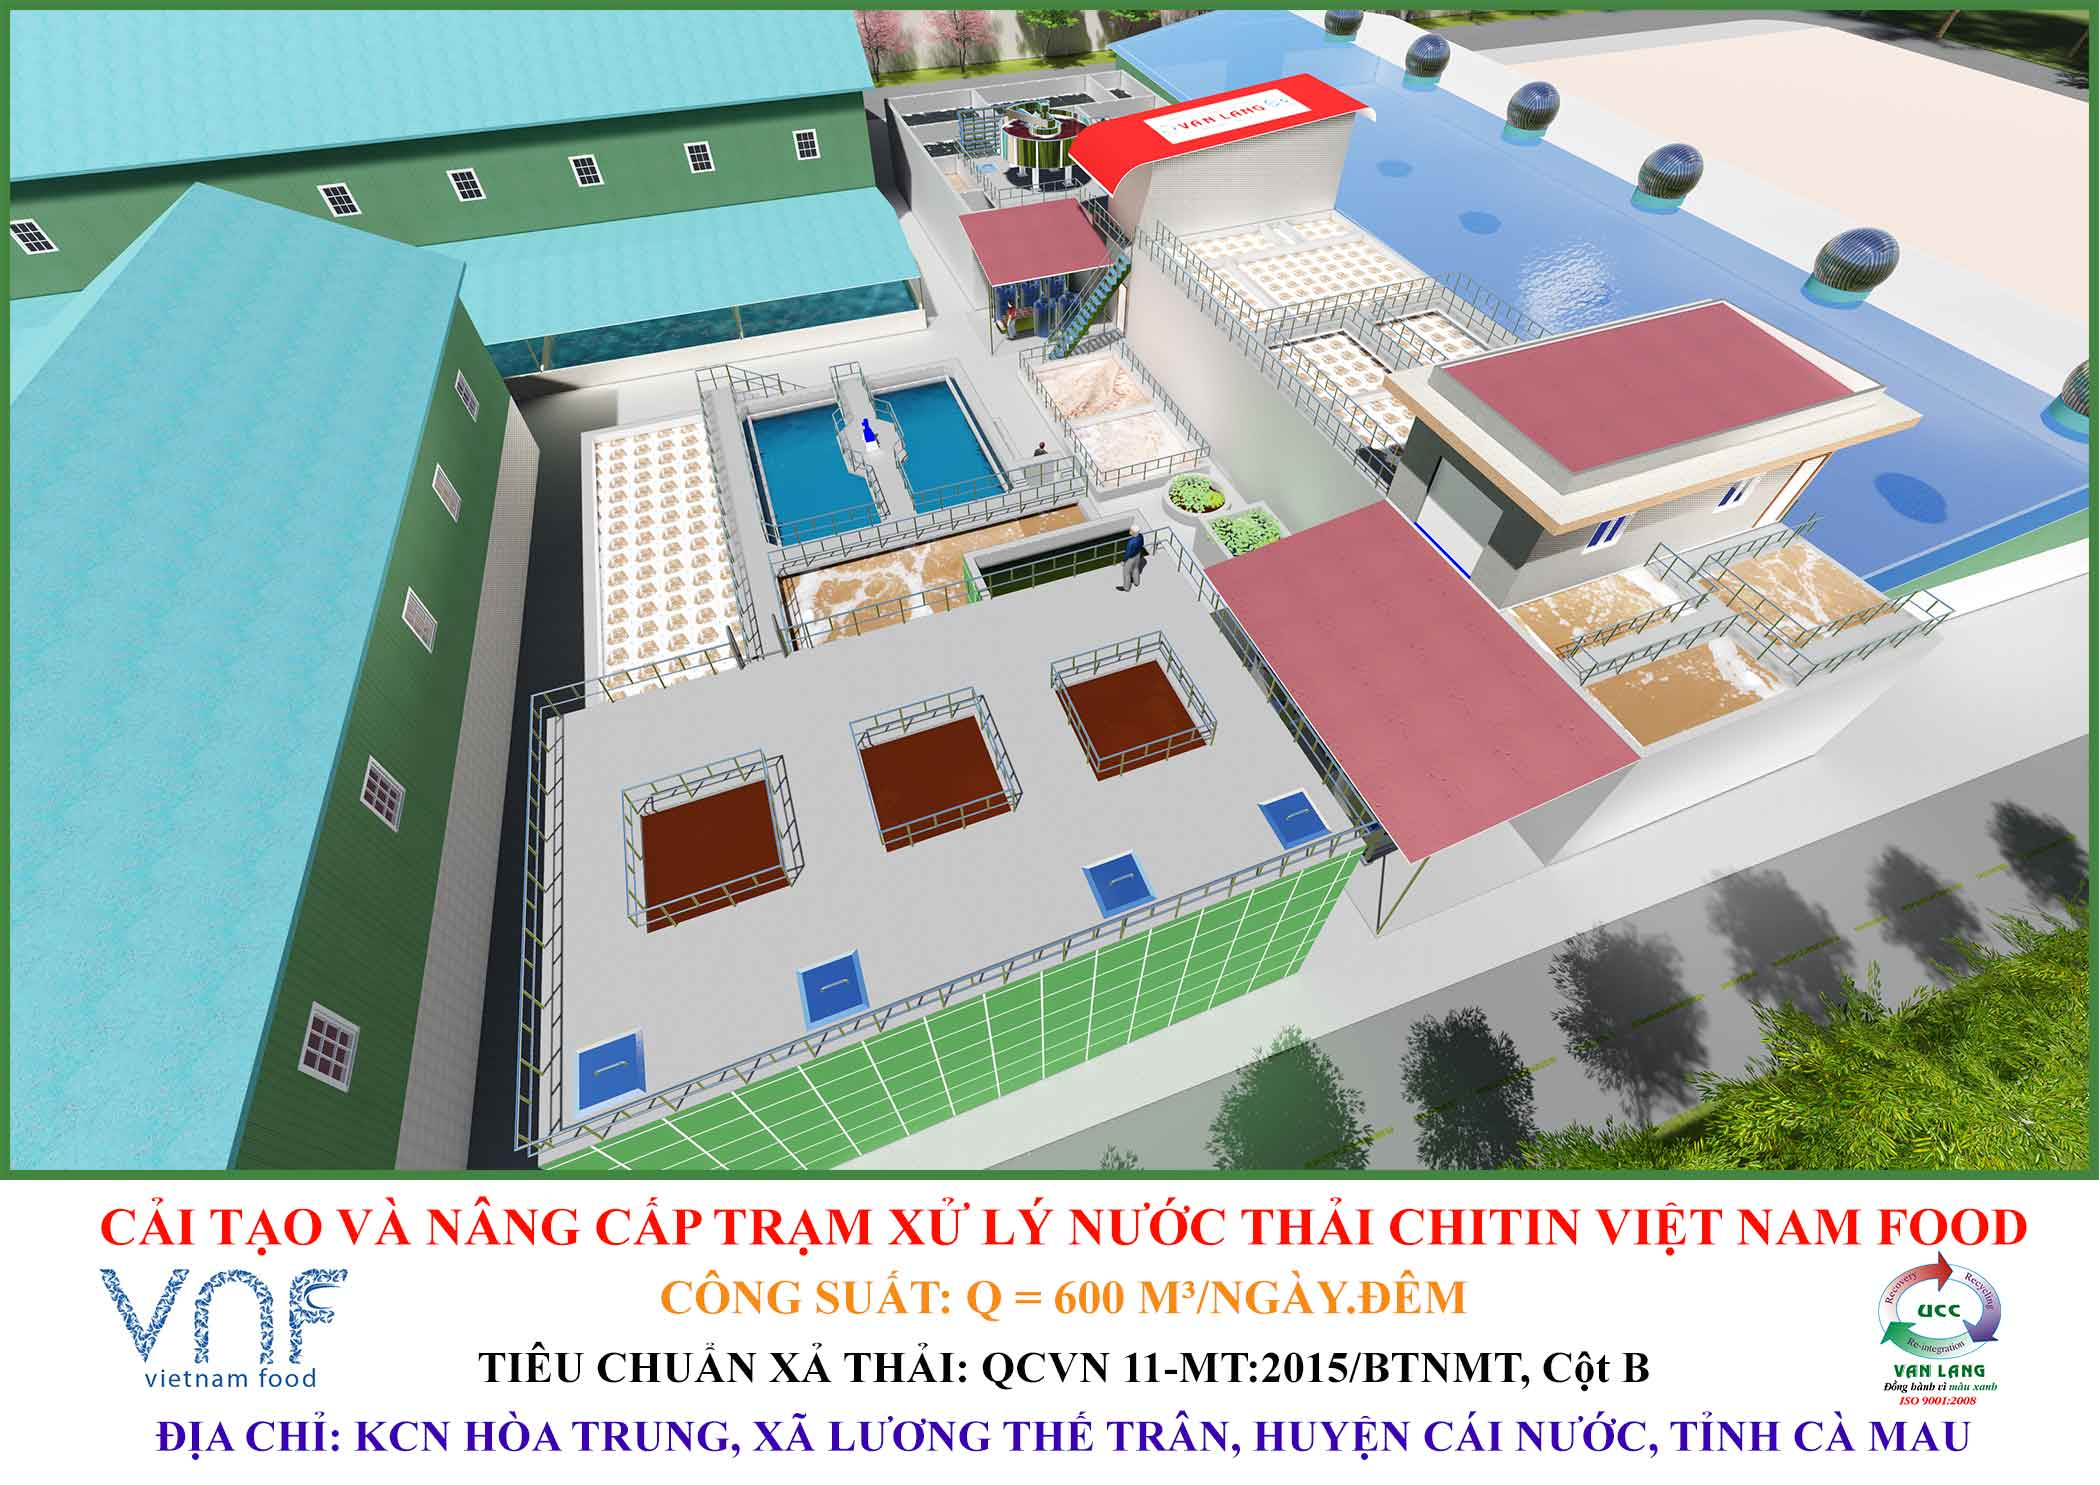 CHITIN VIETNAM FOOD WASTEWATER TREATMENT PLANT